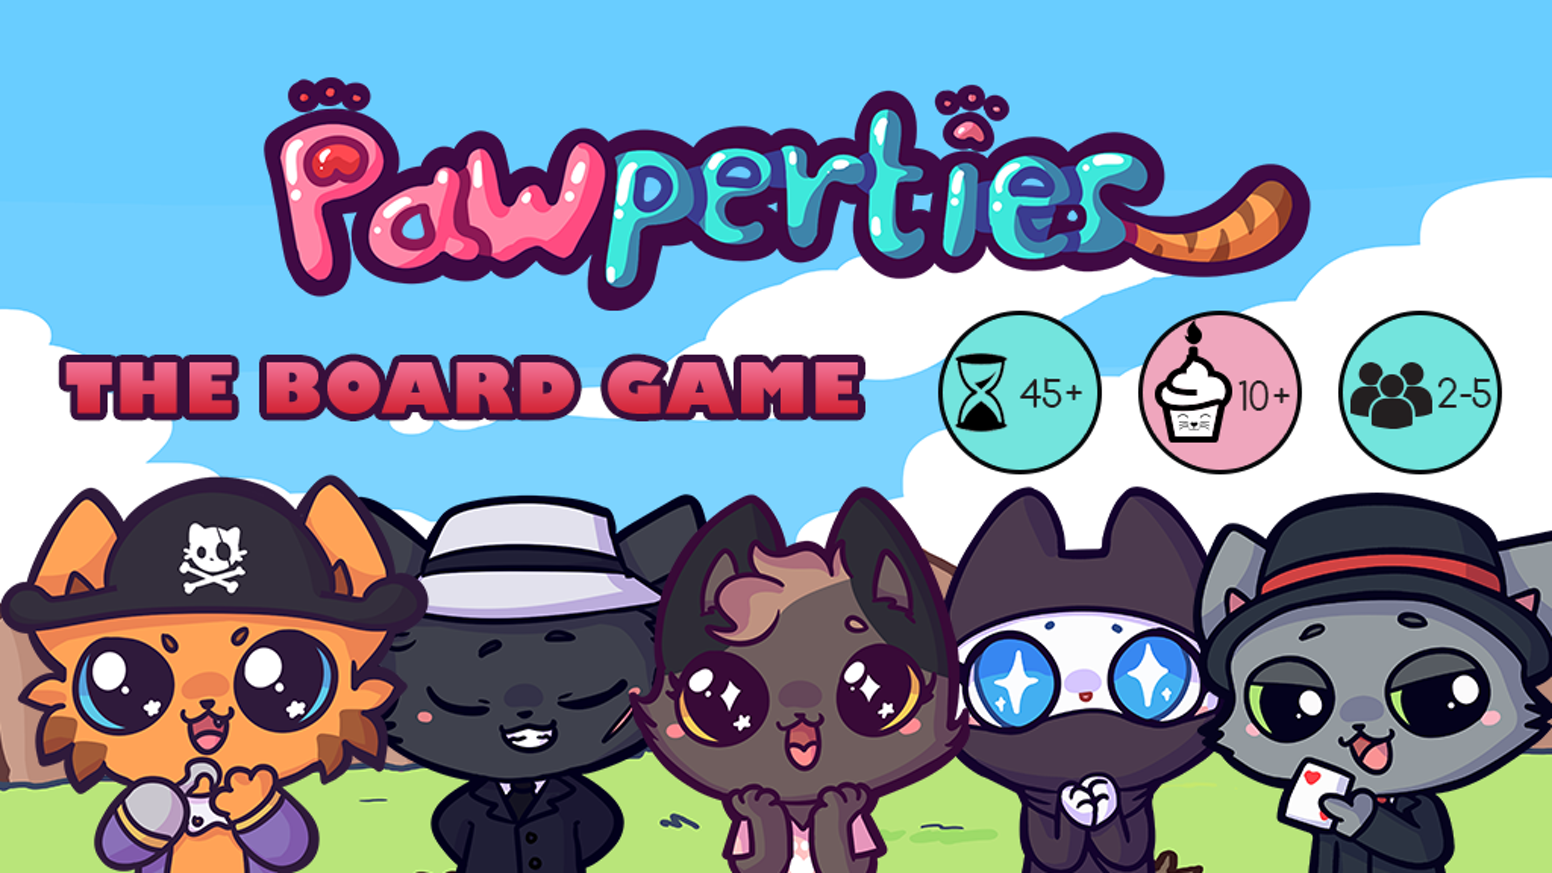 Join these unique Cats in the race for Pawperty ownership! With 5 furry Cats to ally with, no game will be the same! Missed the Kickstarter? Back us on Backer-Kit https://pawperties.backerkit.com/hosted_preorders